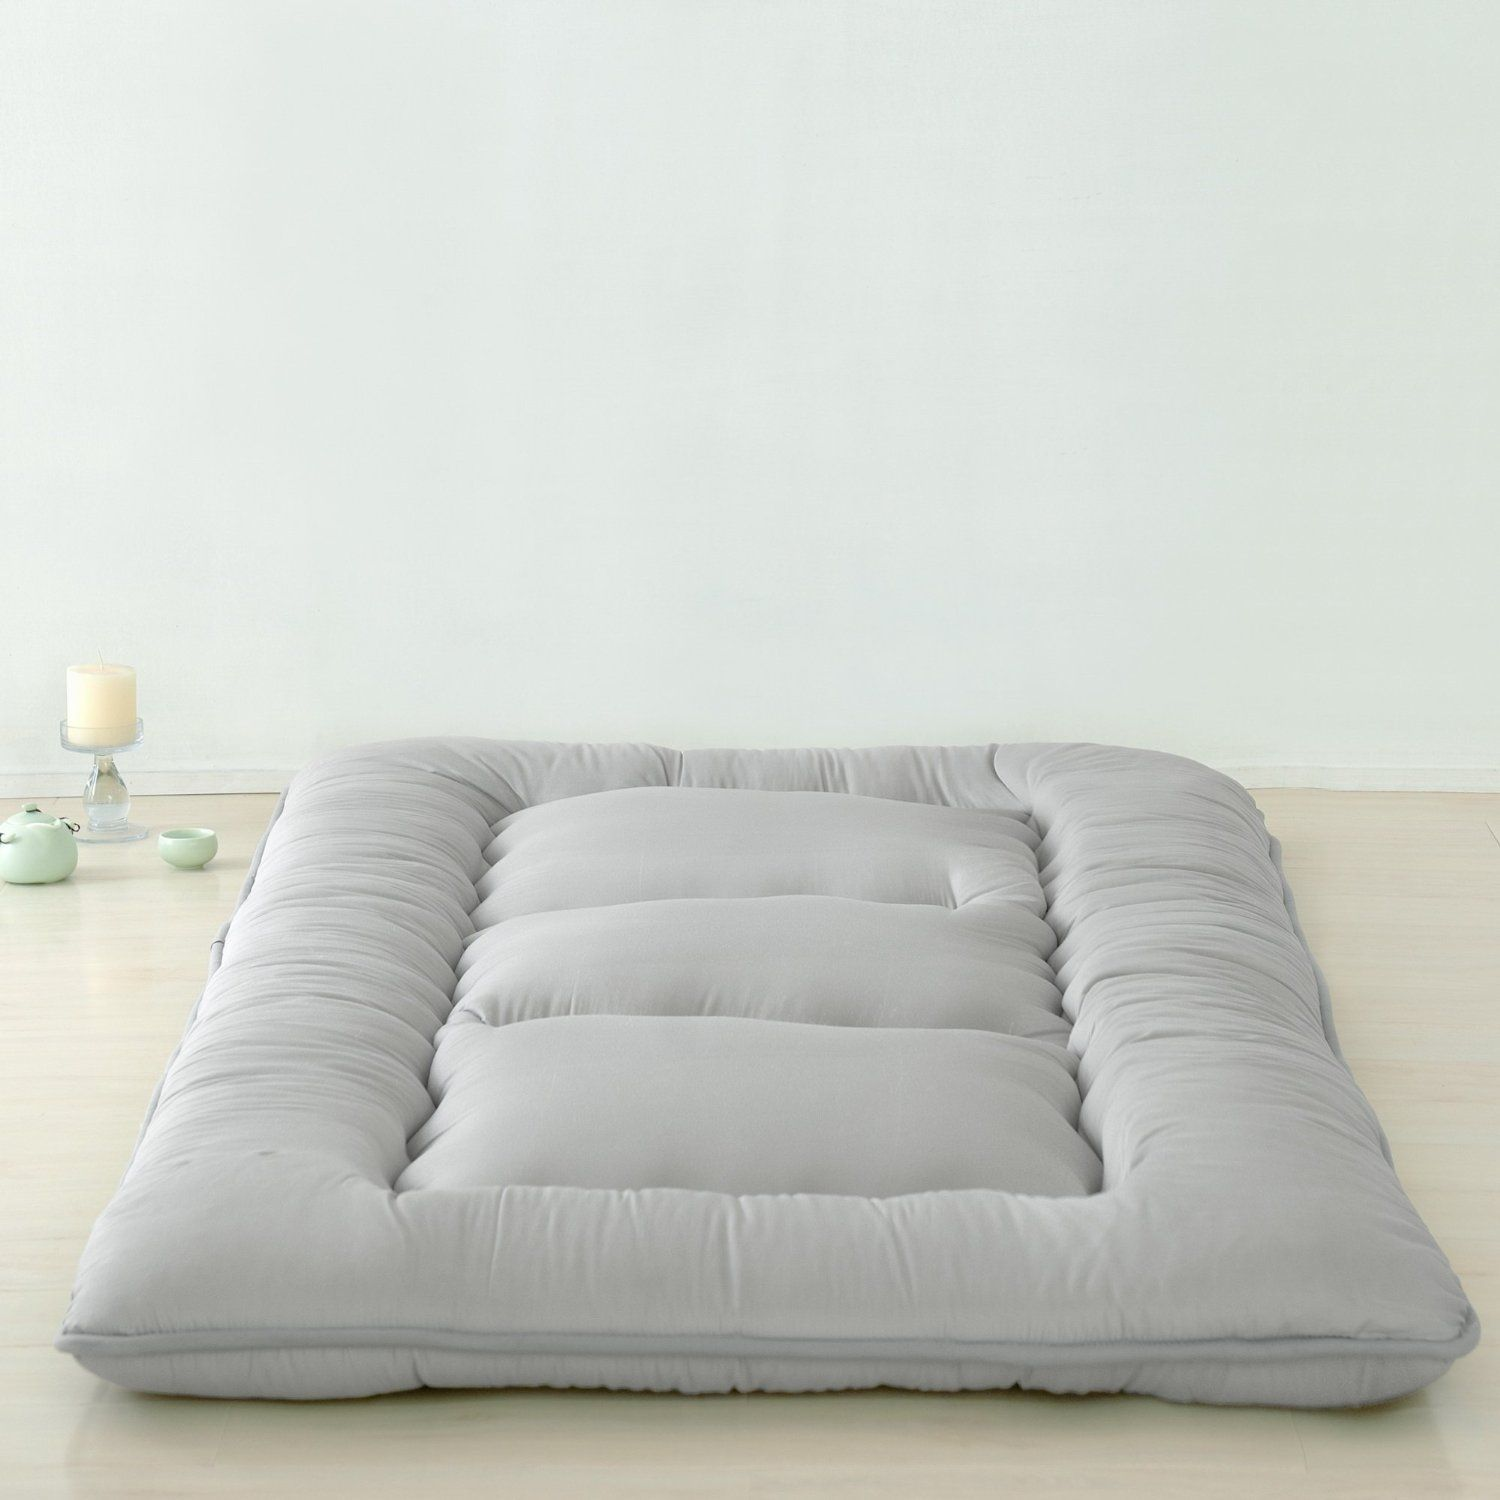 Com Light Grey Futon Tatami Mat Japanese Mattress Cheap Futons For